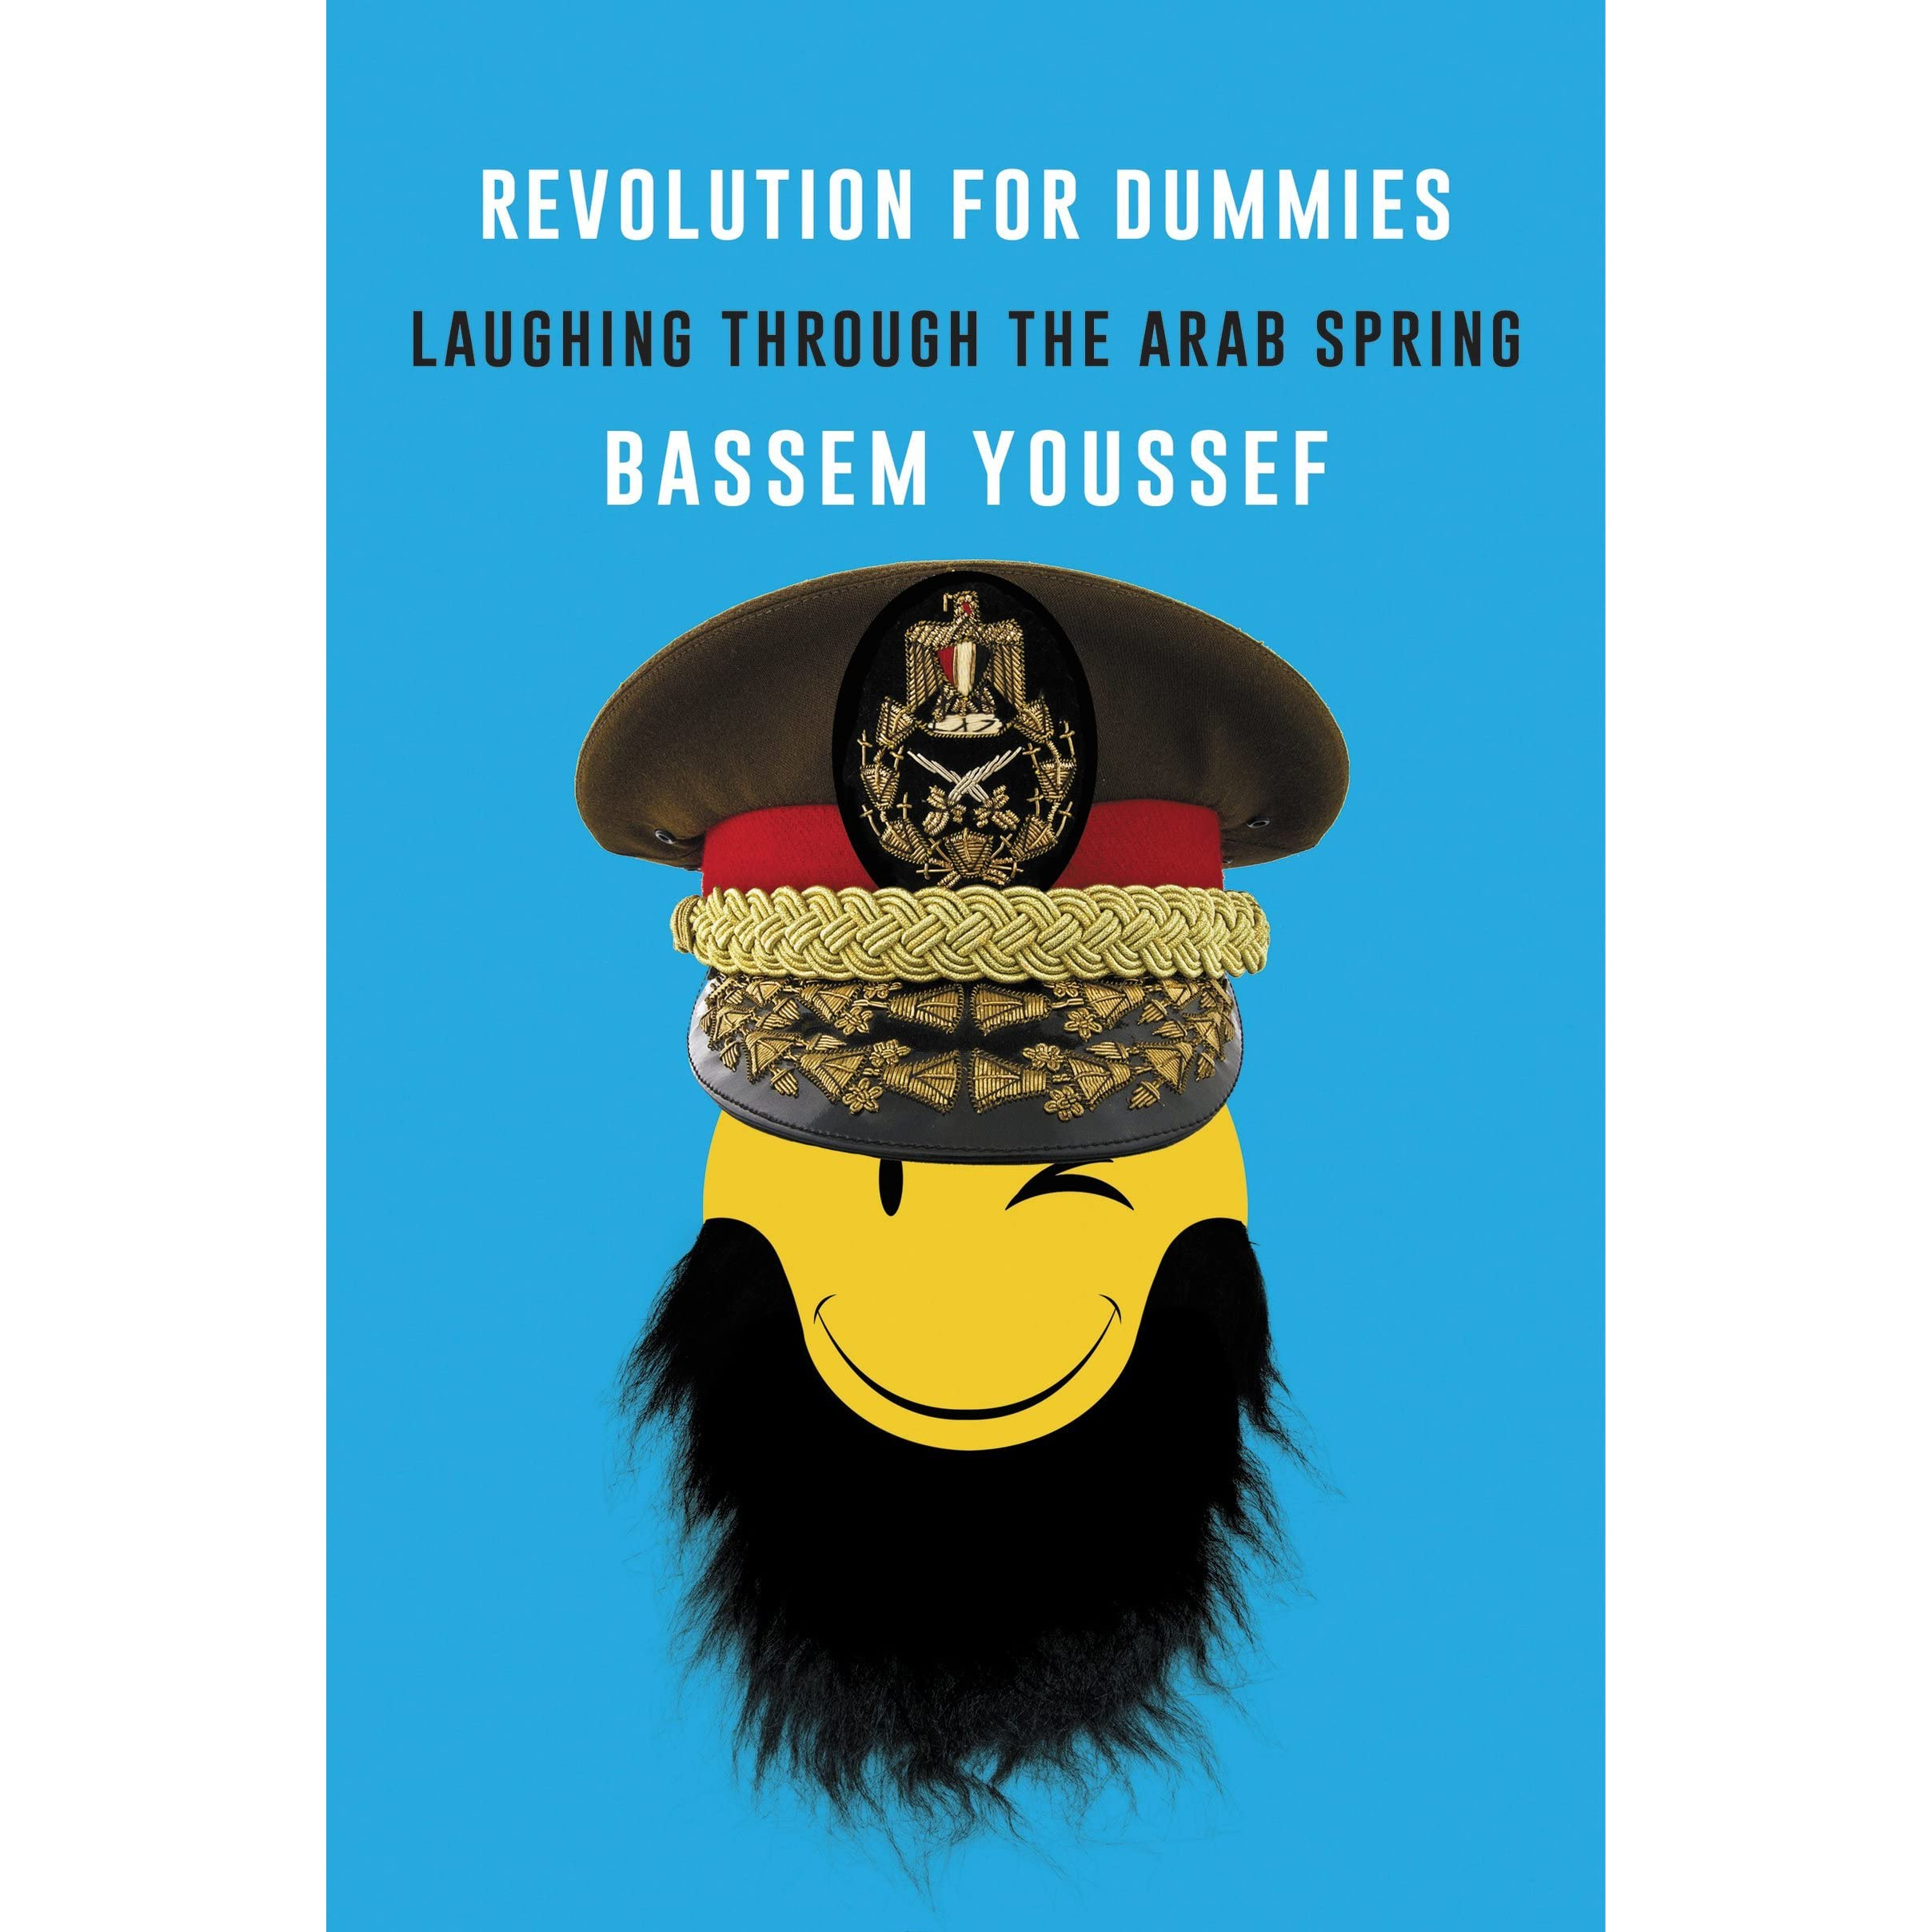 Revolution for dummies laughing through the arab spring by bassem revolution for dummies laughing through the arab spring by bassem youssef malvernweather Images